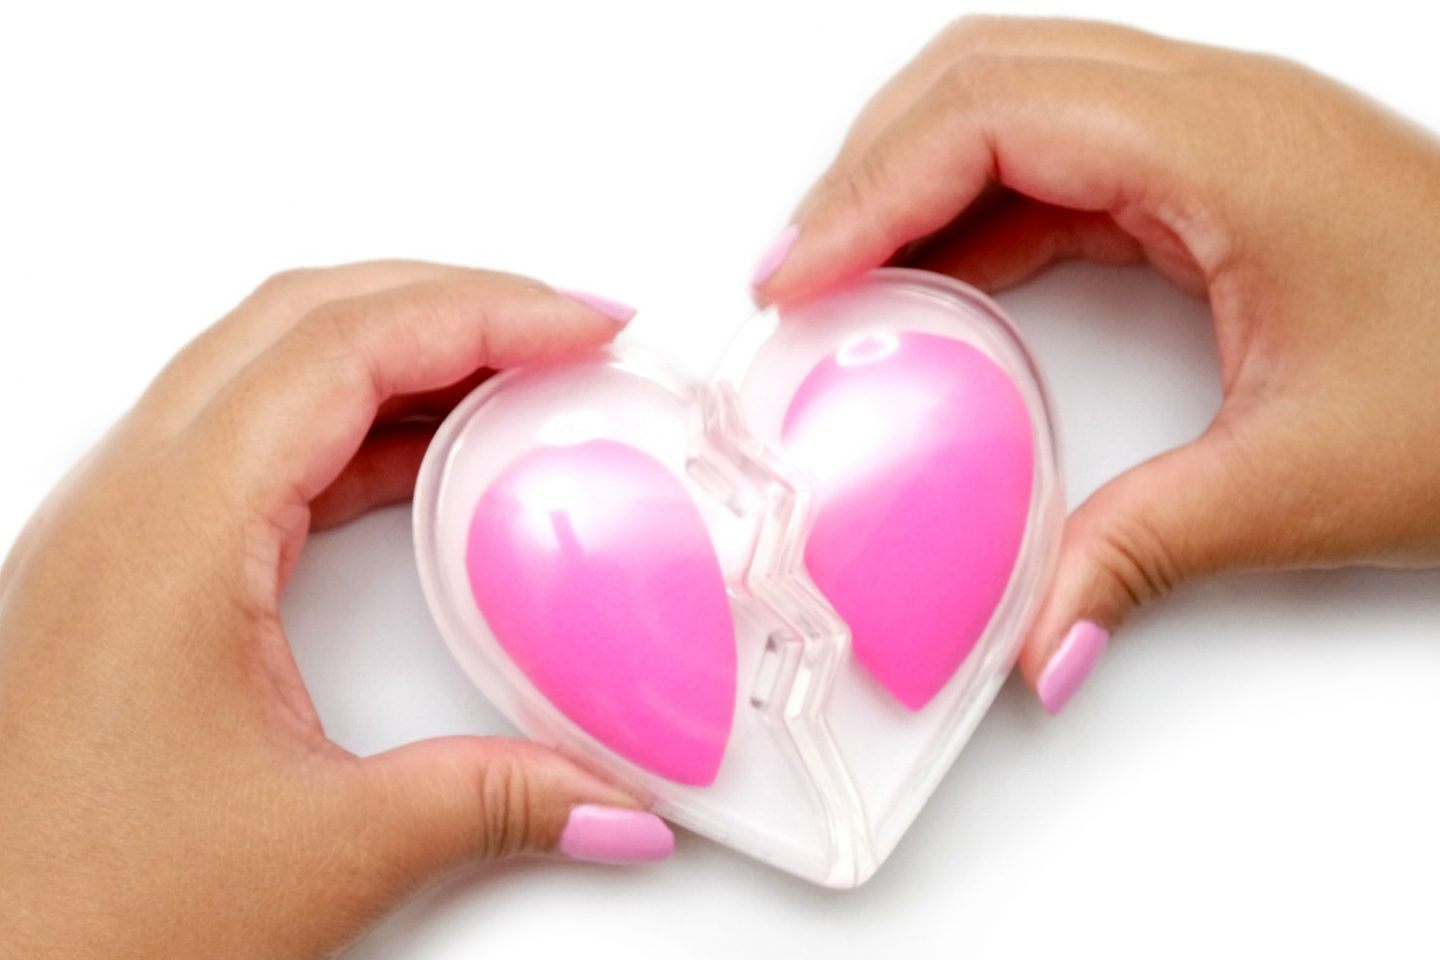 Share Your Heart with the Original Beautyblender BFF set